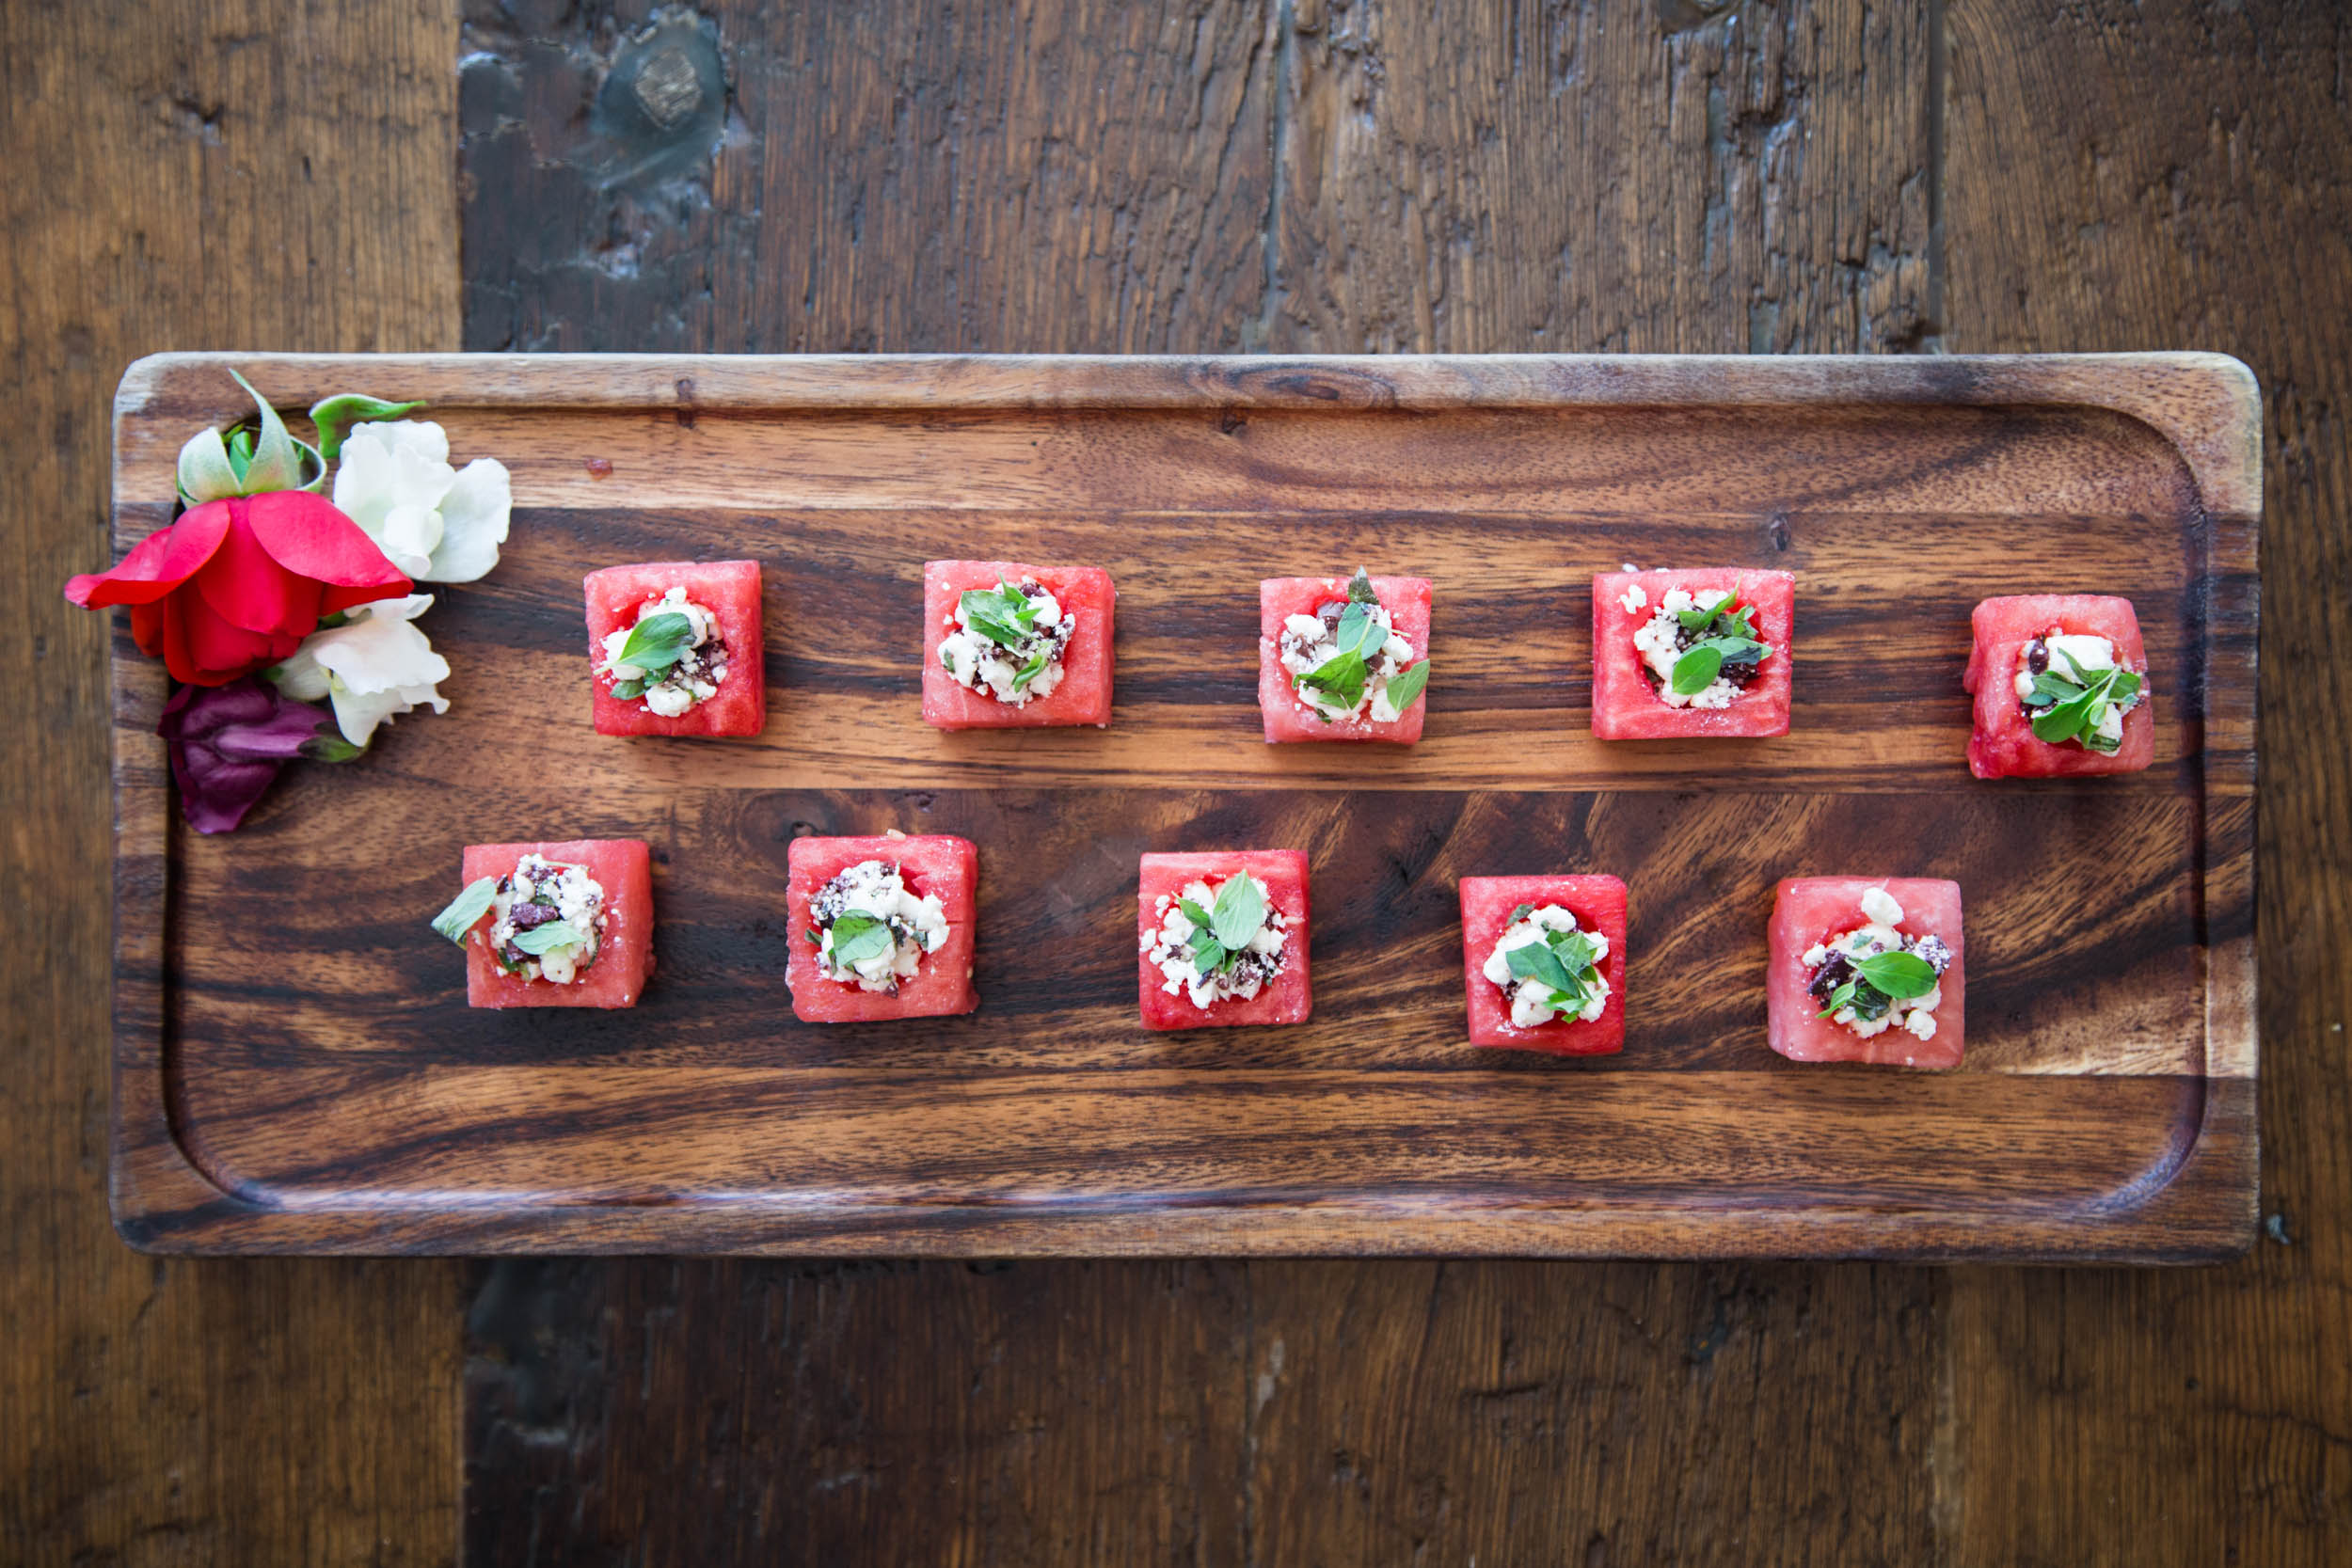 Feta, Black Olive, and Marjoram in Watermelon Cup